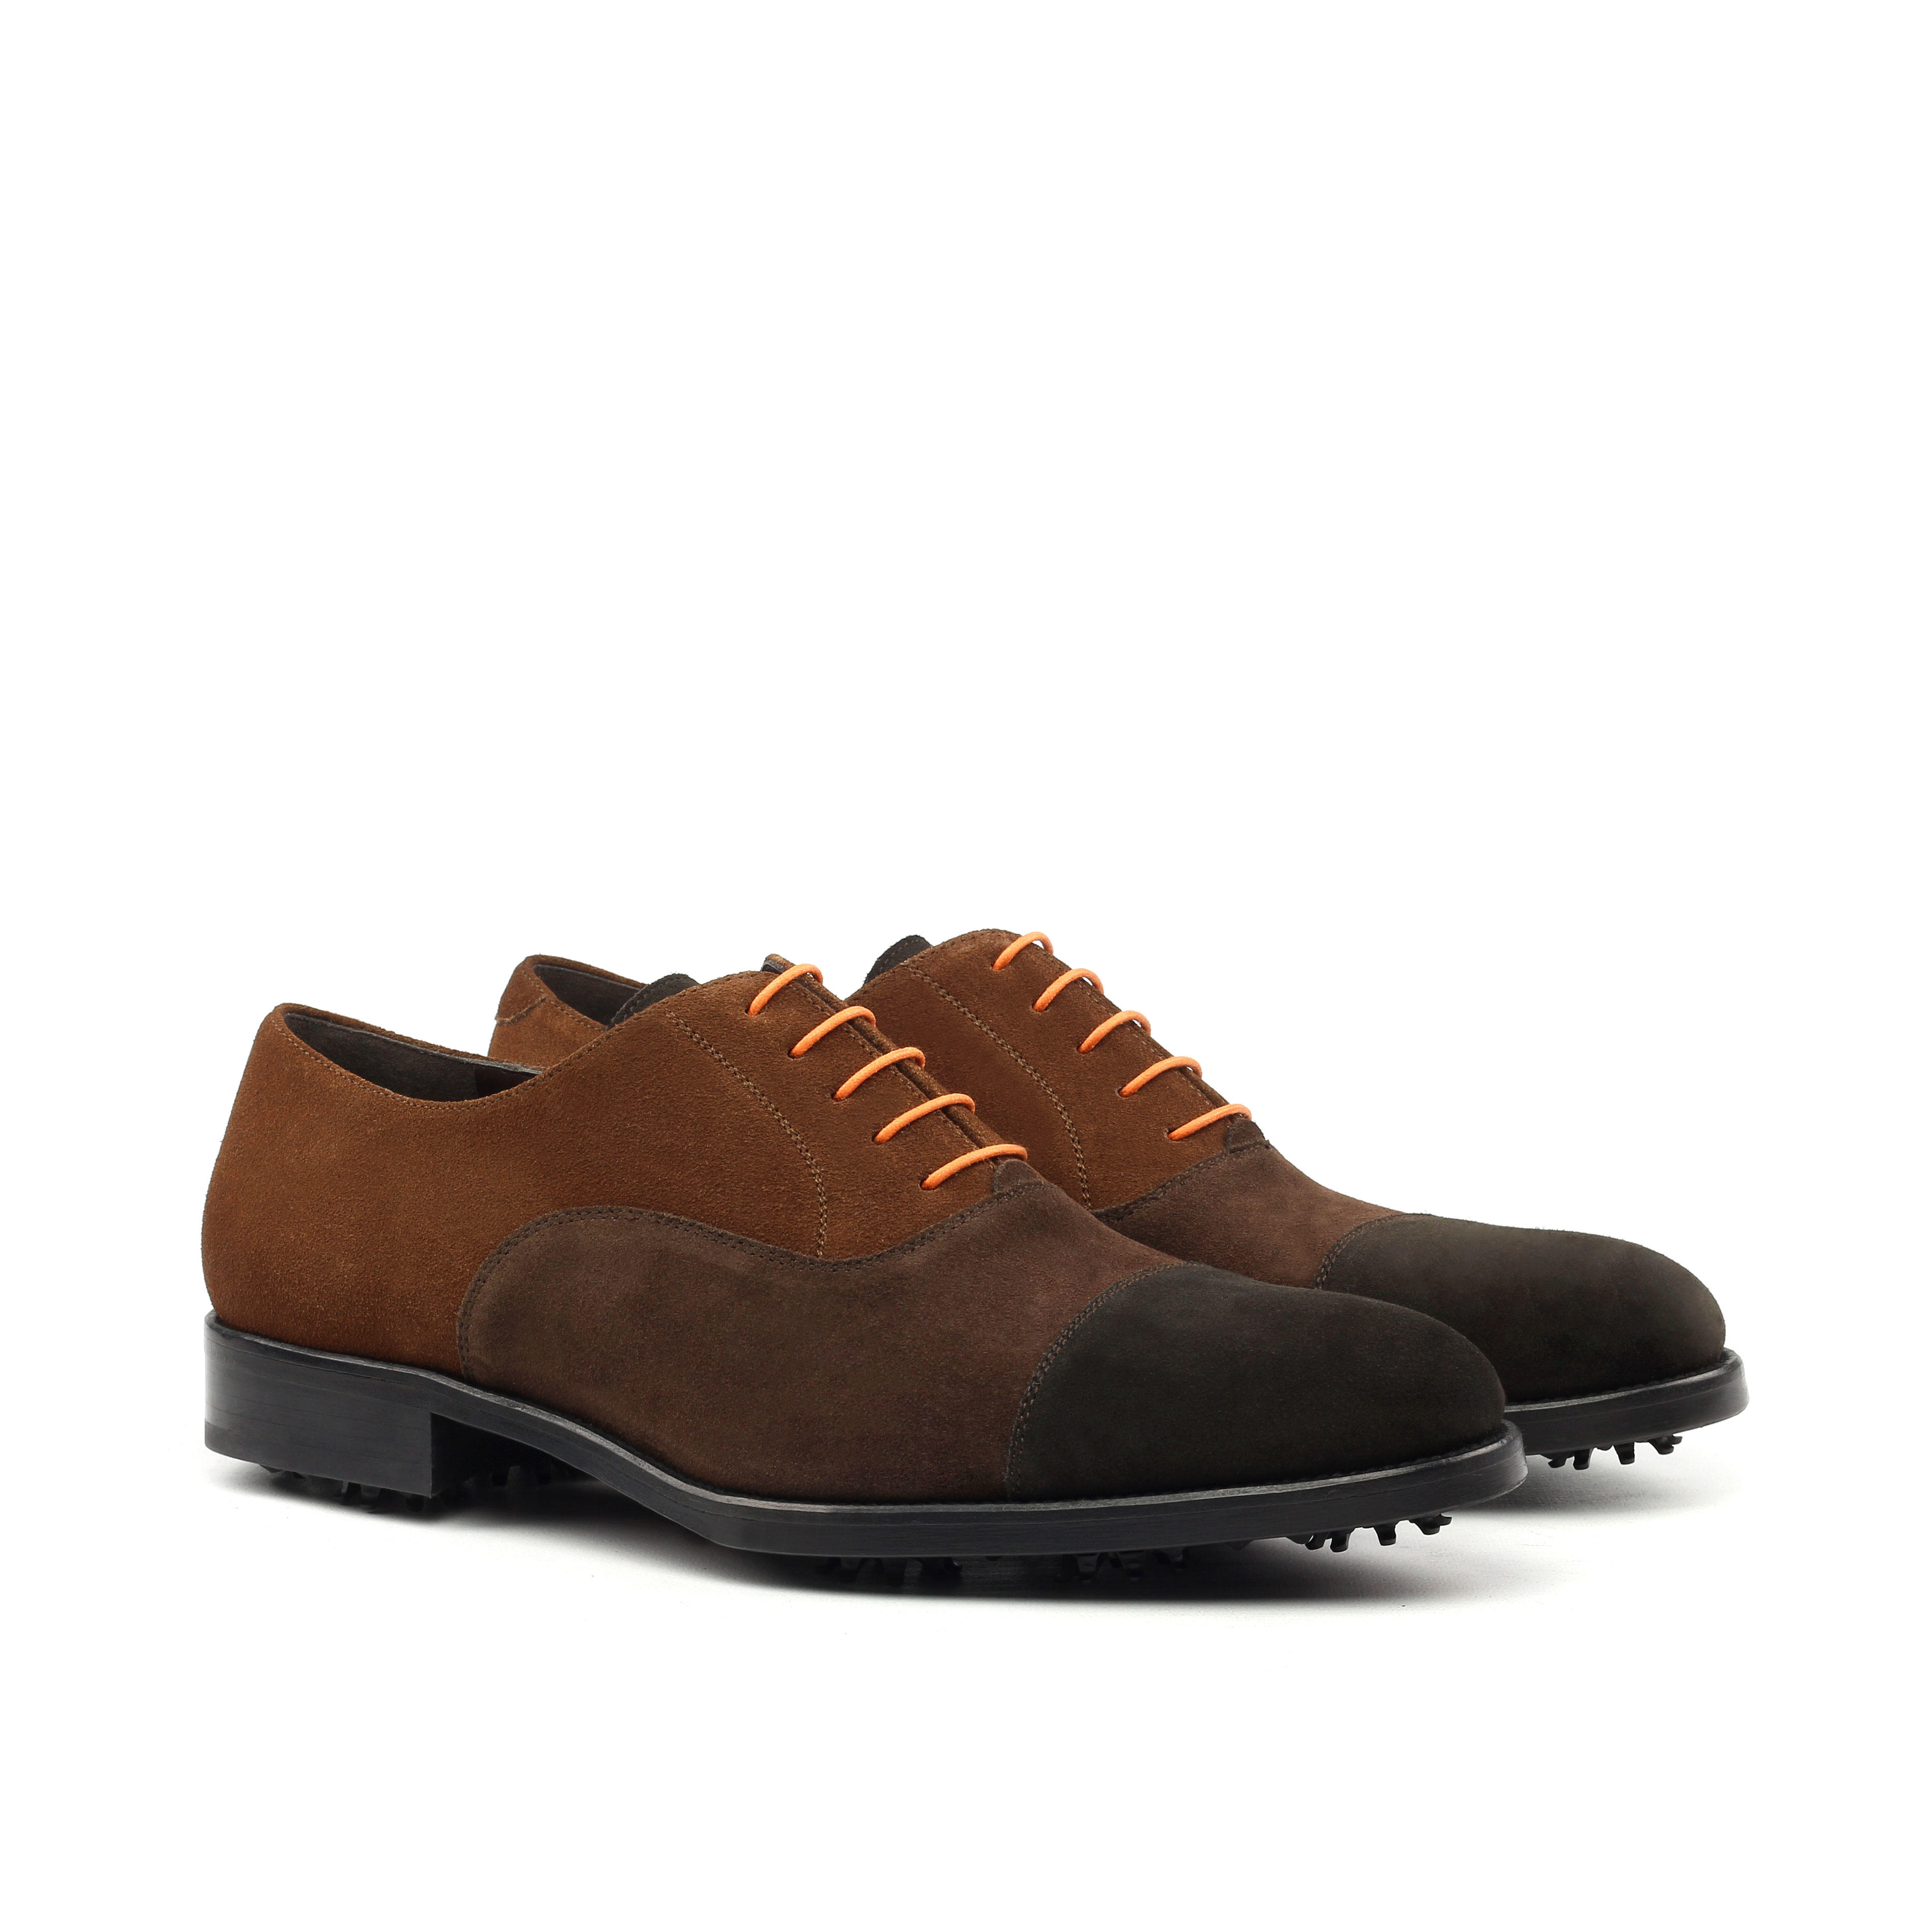 MANOR OF LONDON 'The Oxford' Three Tone Brown Suede Golfing Shoe Luxury Custom Initials Monogrammed Front Side View